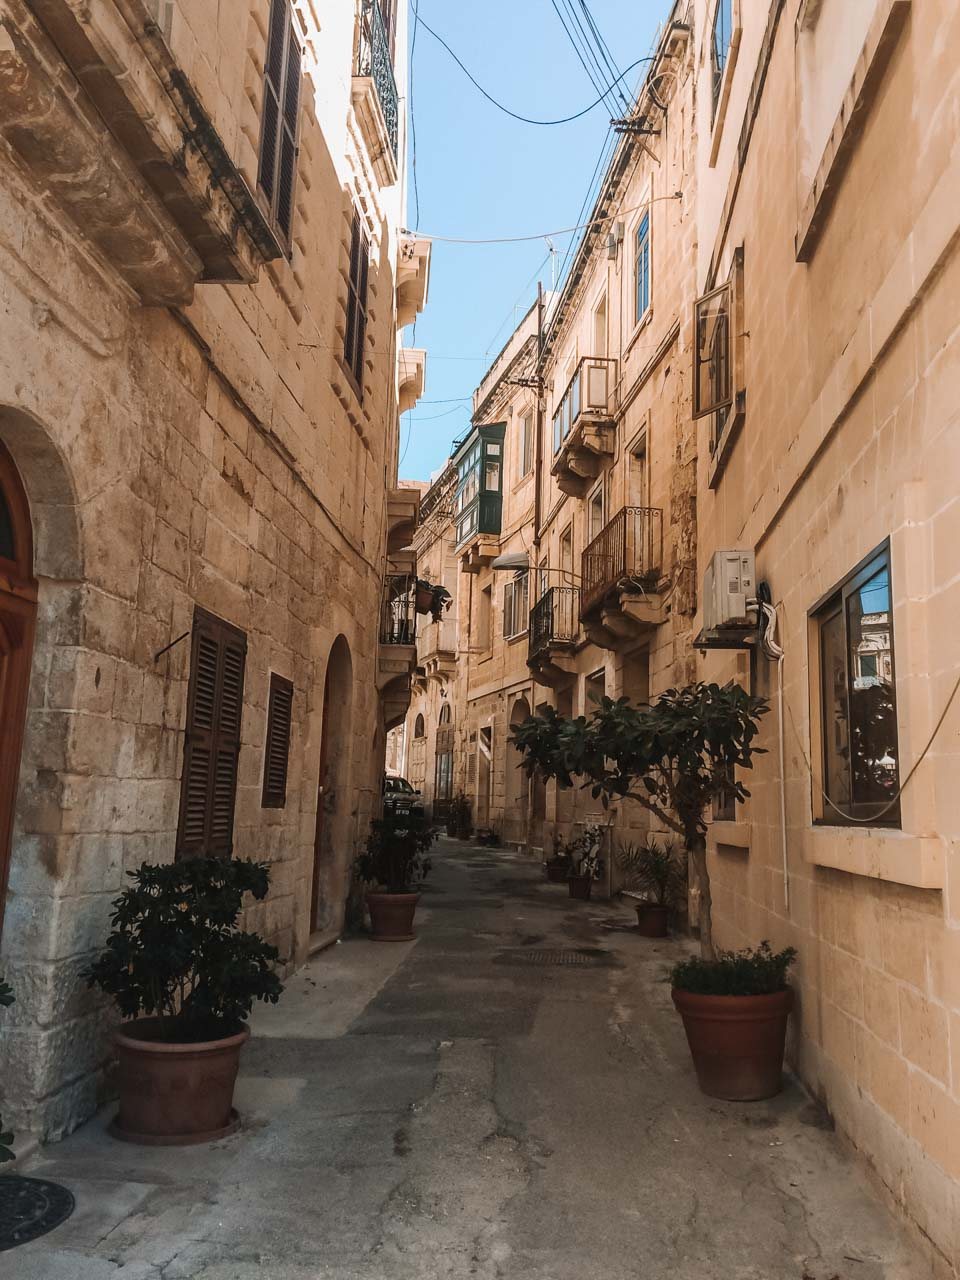 A traditional street lined with plants in Birgu, Malta